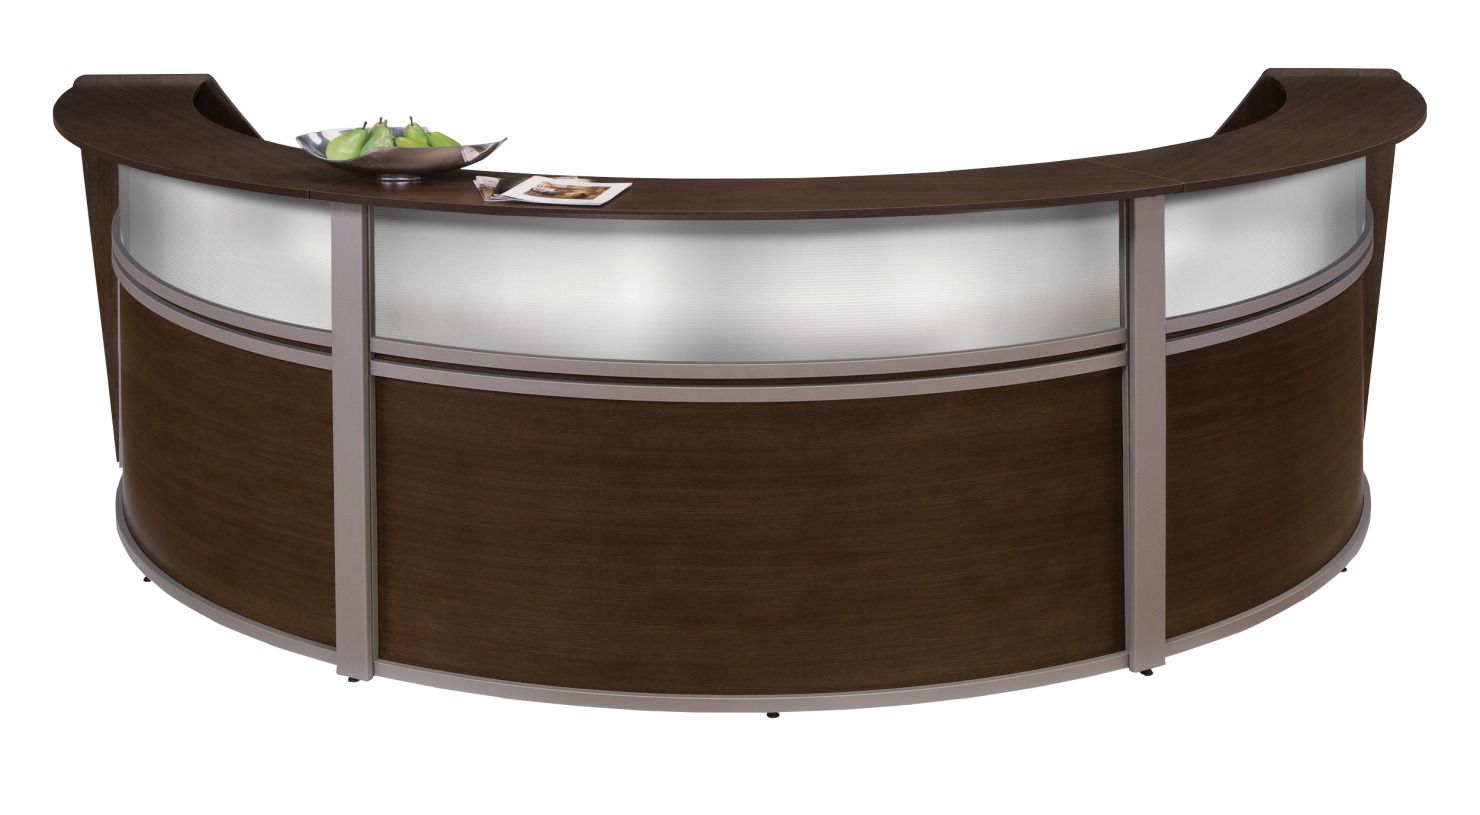 OFM Marque Curved Triple Plexi-Reception Station, 143-1/3 x 71 x 45-1/2 Inches, Various Options